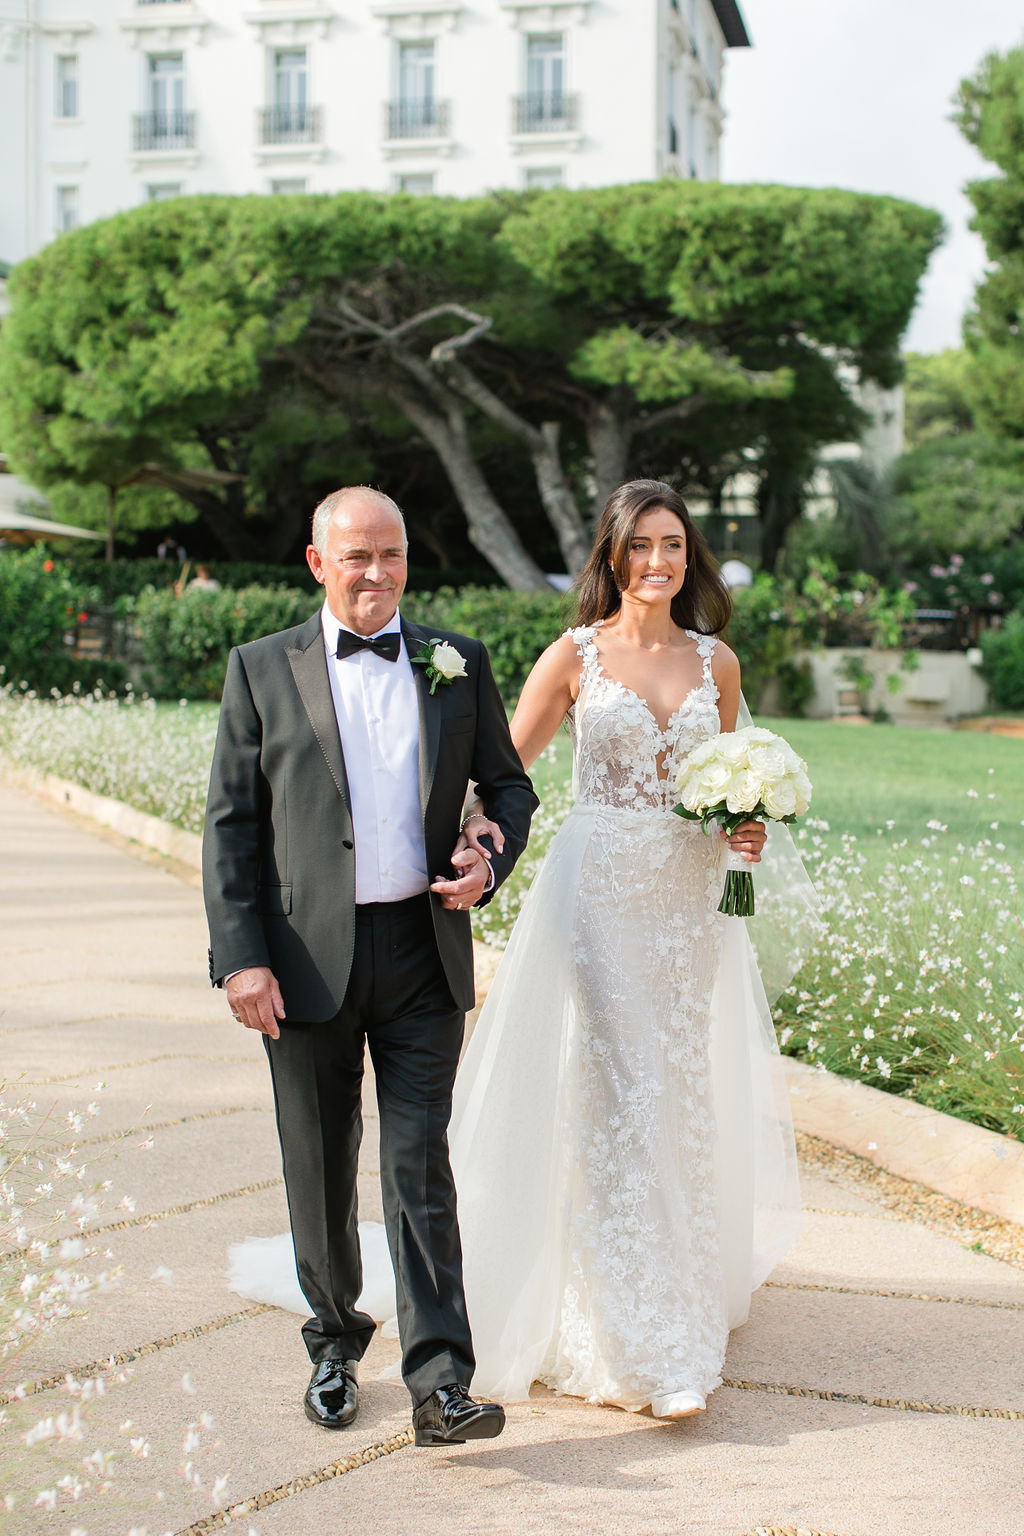 grand-hotel-cap-ferrat-france-wedding-photographer-roberta-facchini-photography-223